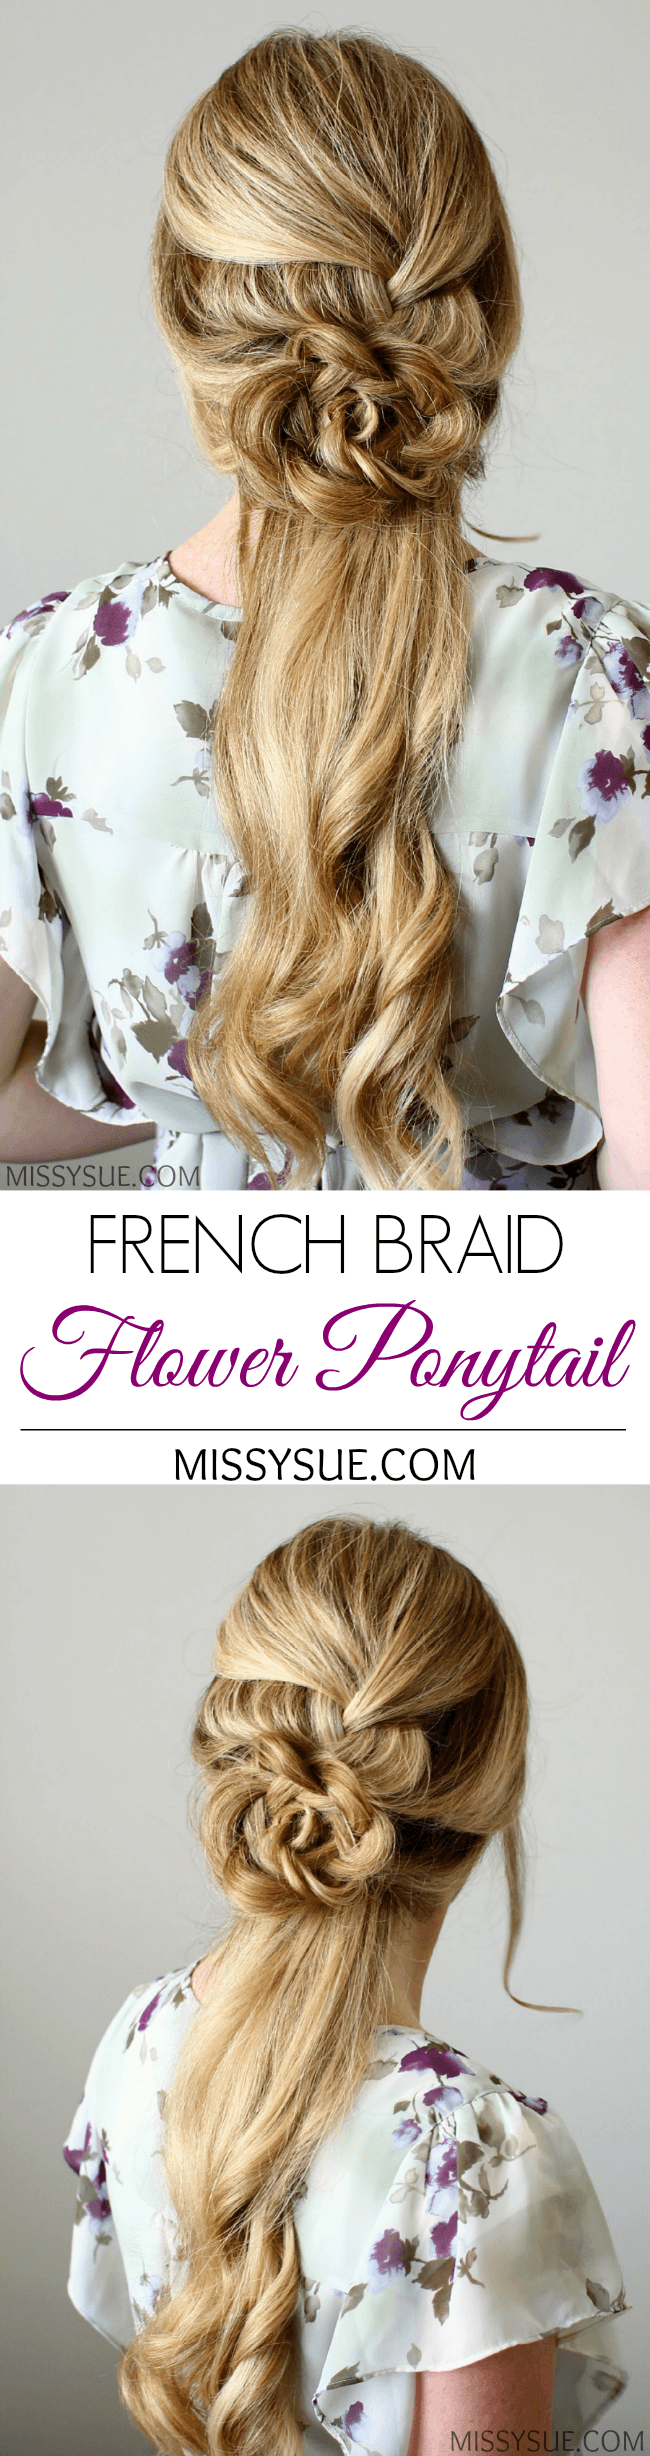 French Braid Flower Ponytail